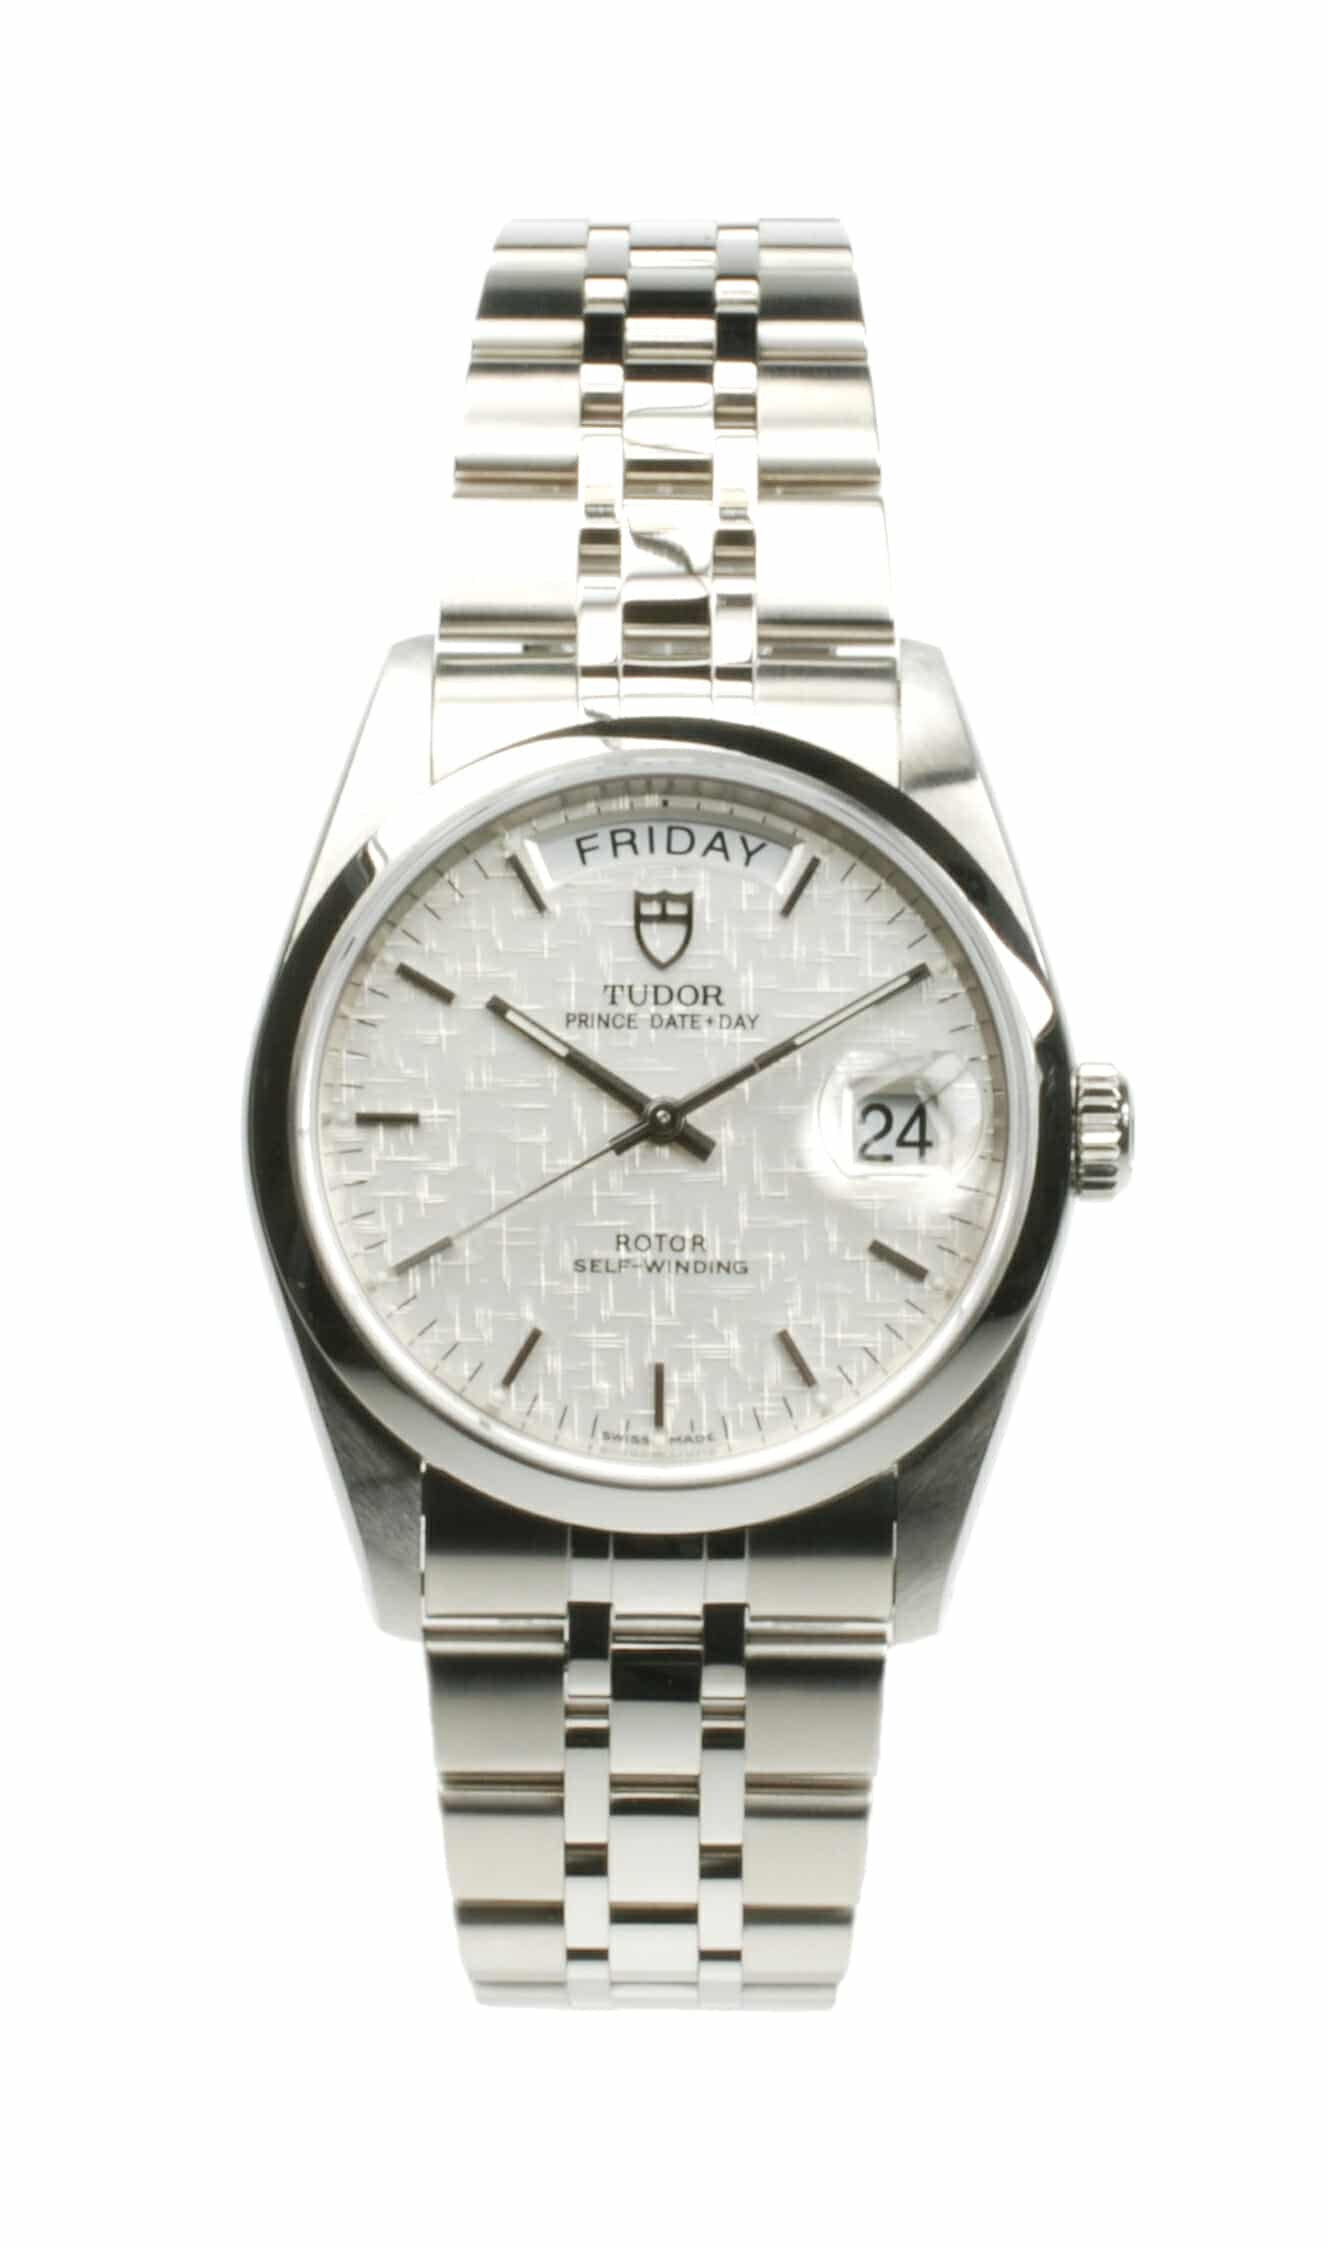 Tudor Prince Date Day 76200 From 2019 Pre-Owned Watch